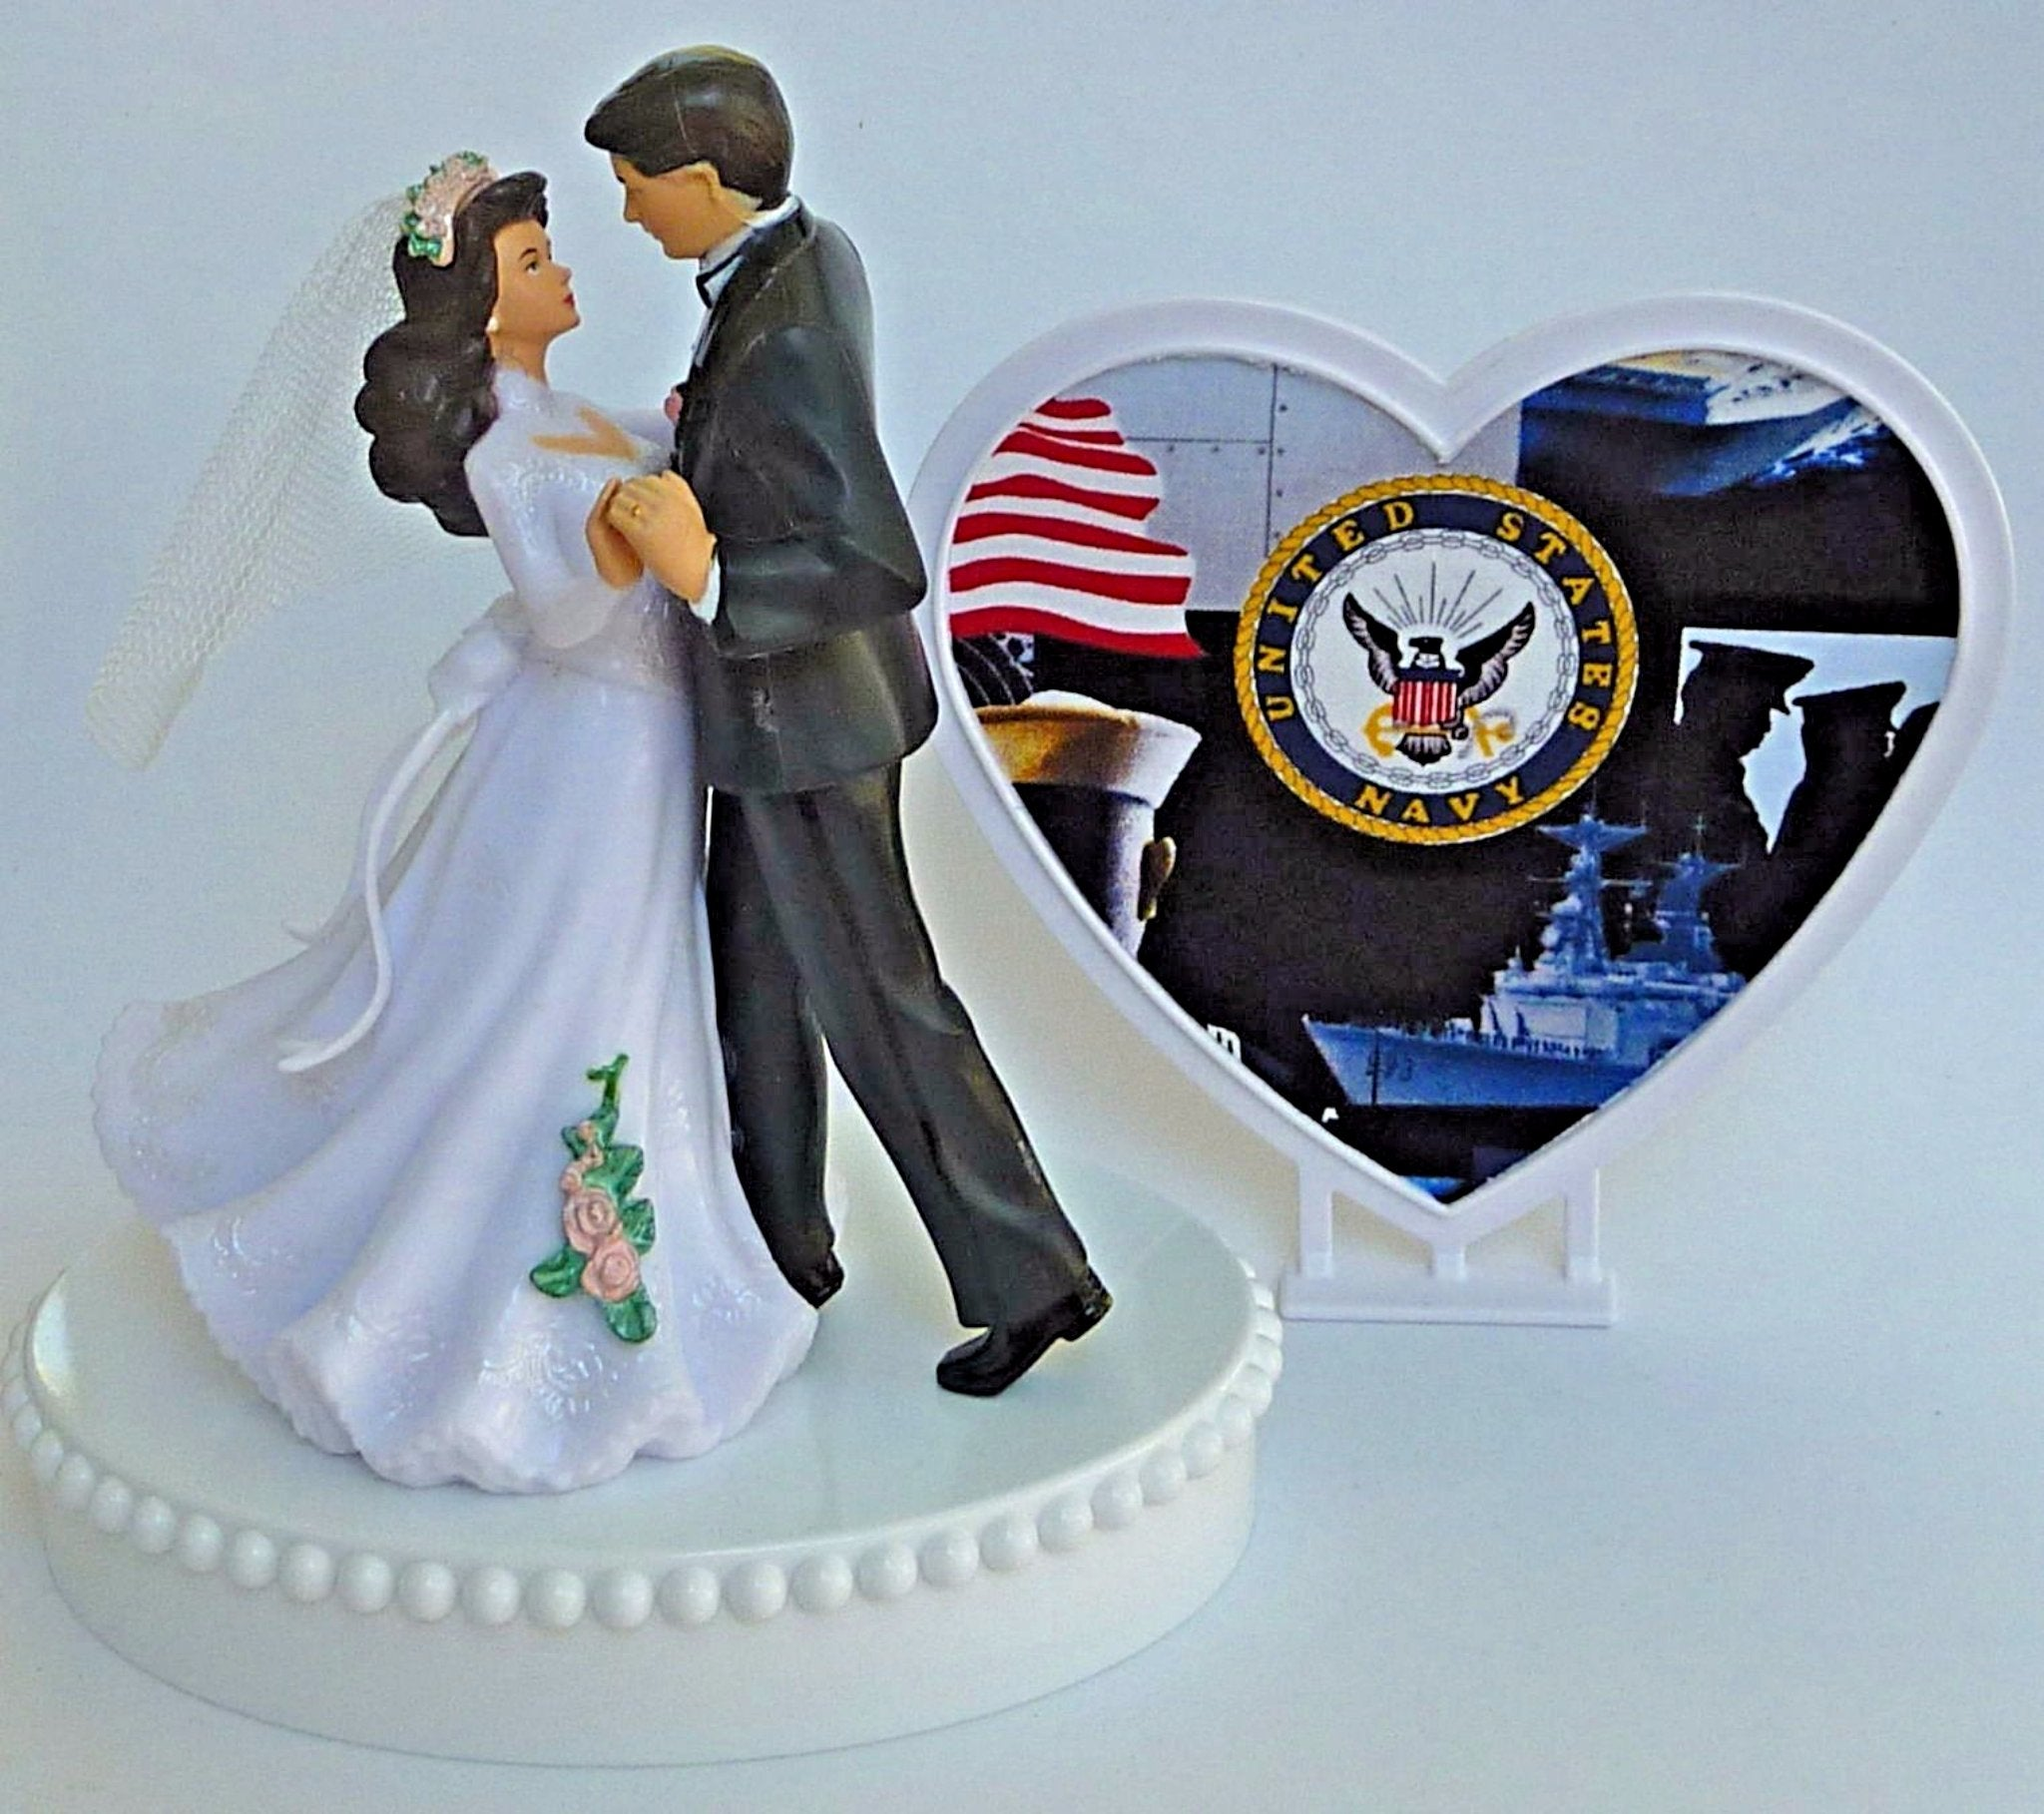 Navy wedding cake topper Fun Wedding Things U.S. military groom's cake top service enlisted USN heart couple dancing bride groom